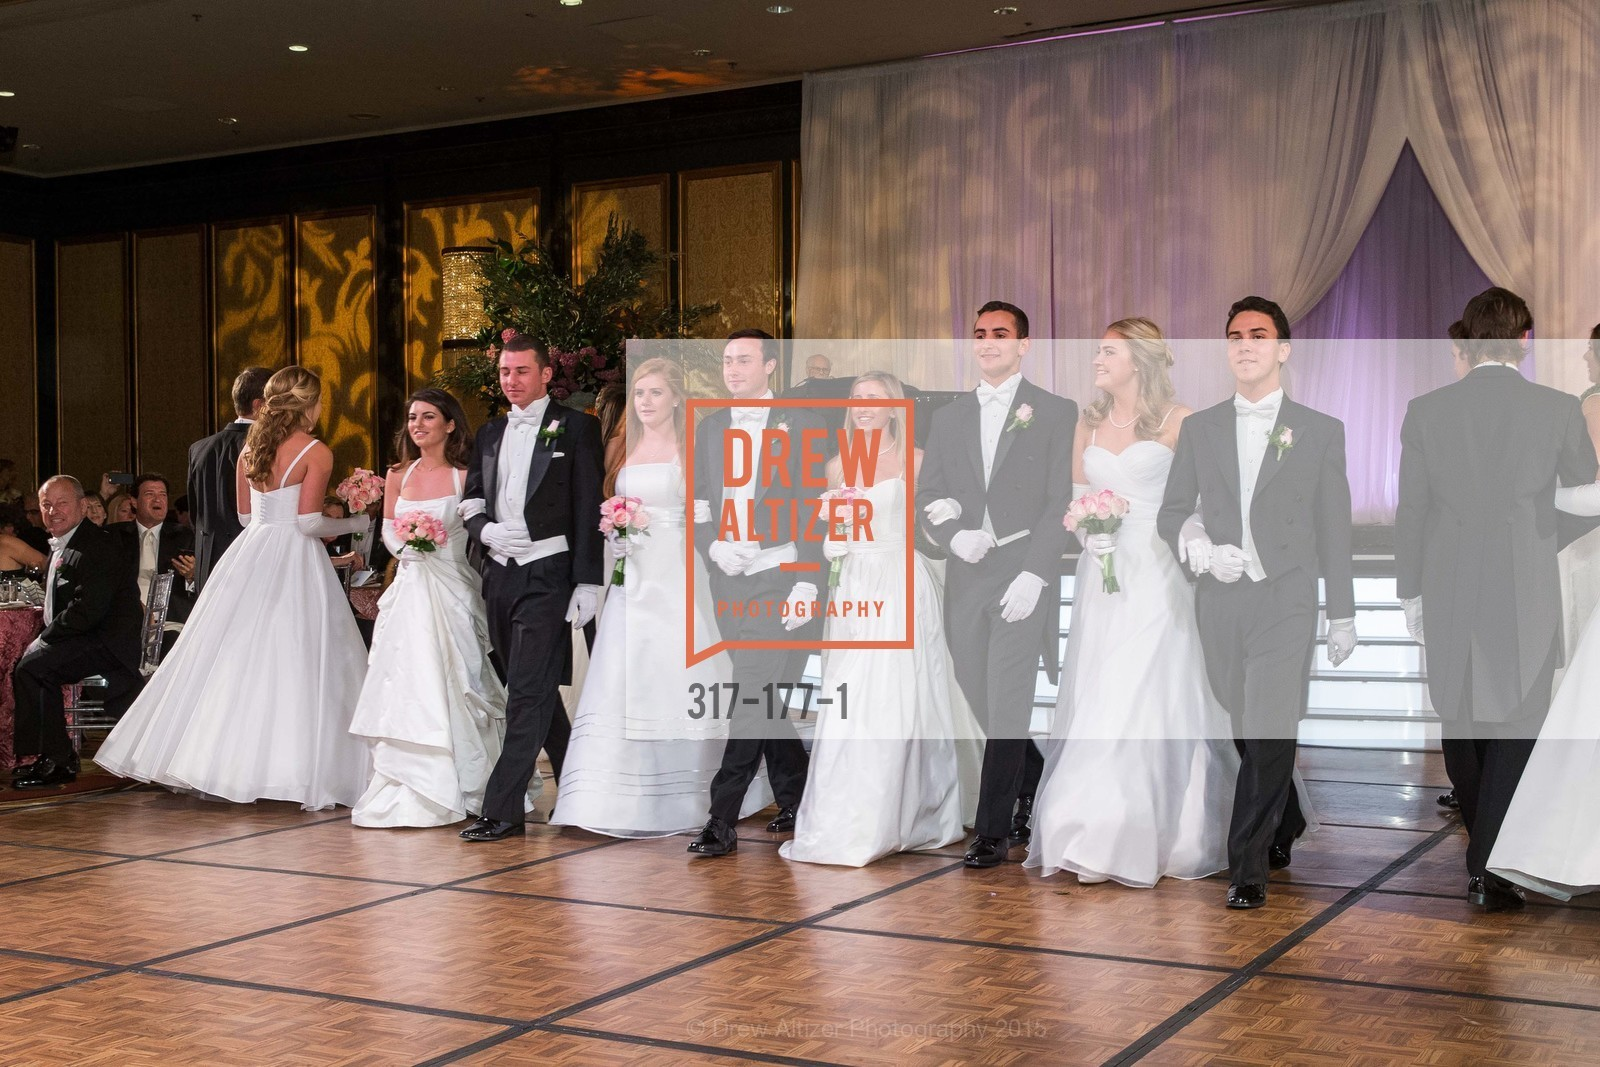 Paige Silverman, Parker Wyatt Silverman, Camille Rich, Kevin Michael Mannix II, Jennifer Reynolds, Maxwell Tucker Brenner, Sara Scannell, Kai Otto Fukami Vogel, The 2015 San Francisco Debutante Ball, The Westin St. Francis San Francisco Union Square. 335 Powell St, June 20th, 2015,Drew Altizer, Drew Altizer Photography, full-service agency, private events, San Francisco photographer, photographer california